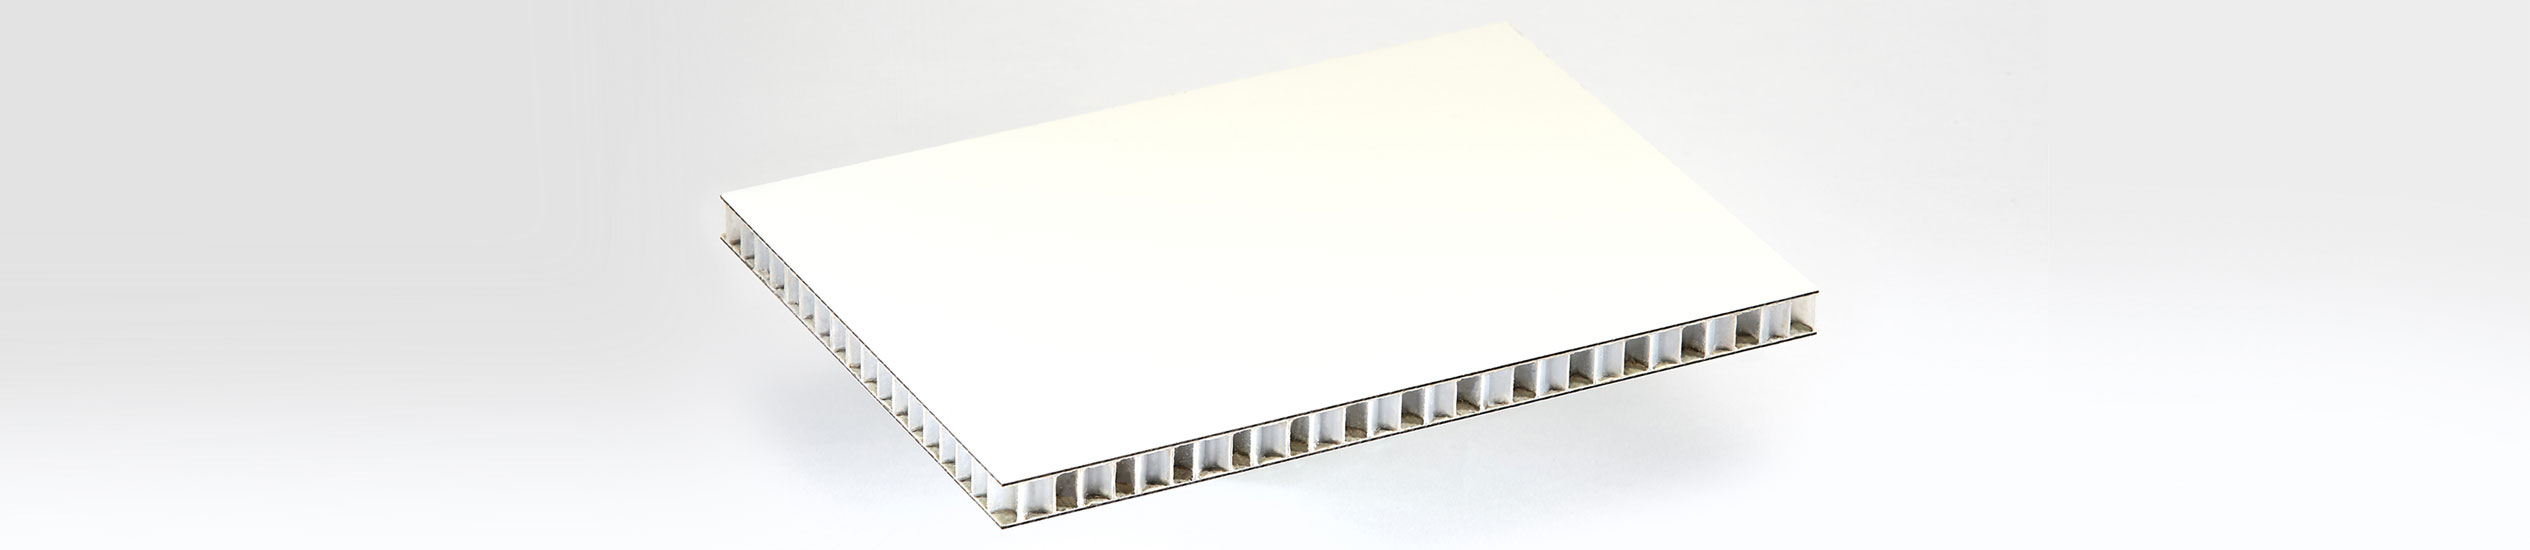 COMPOCEL® HP is a sandwich panel with a face in high pressure laminate and a core in polypropylene honeycomb. It offers high mechanical properties